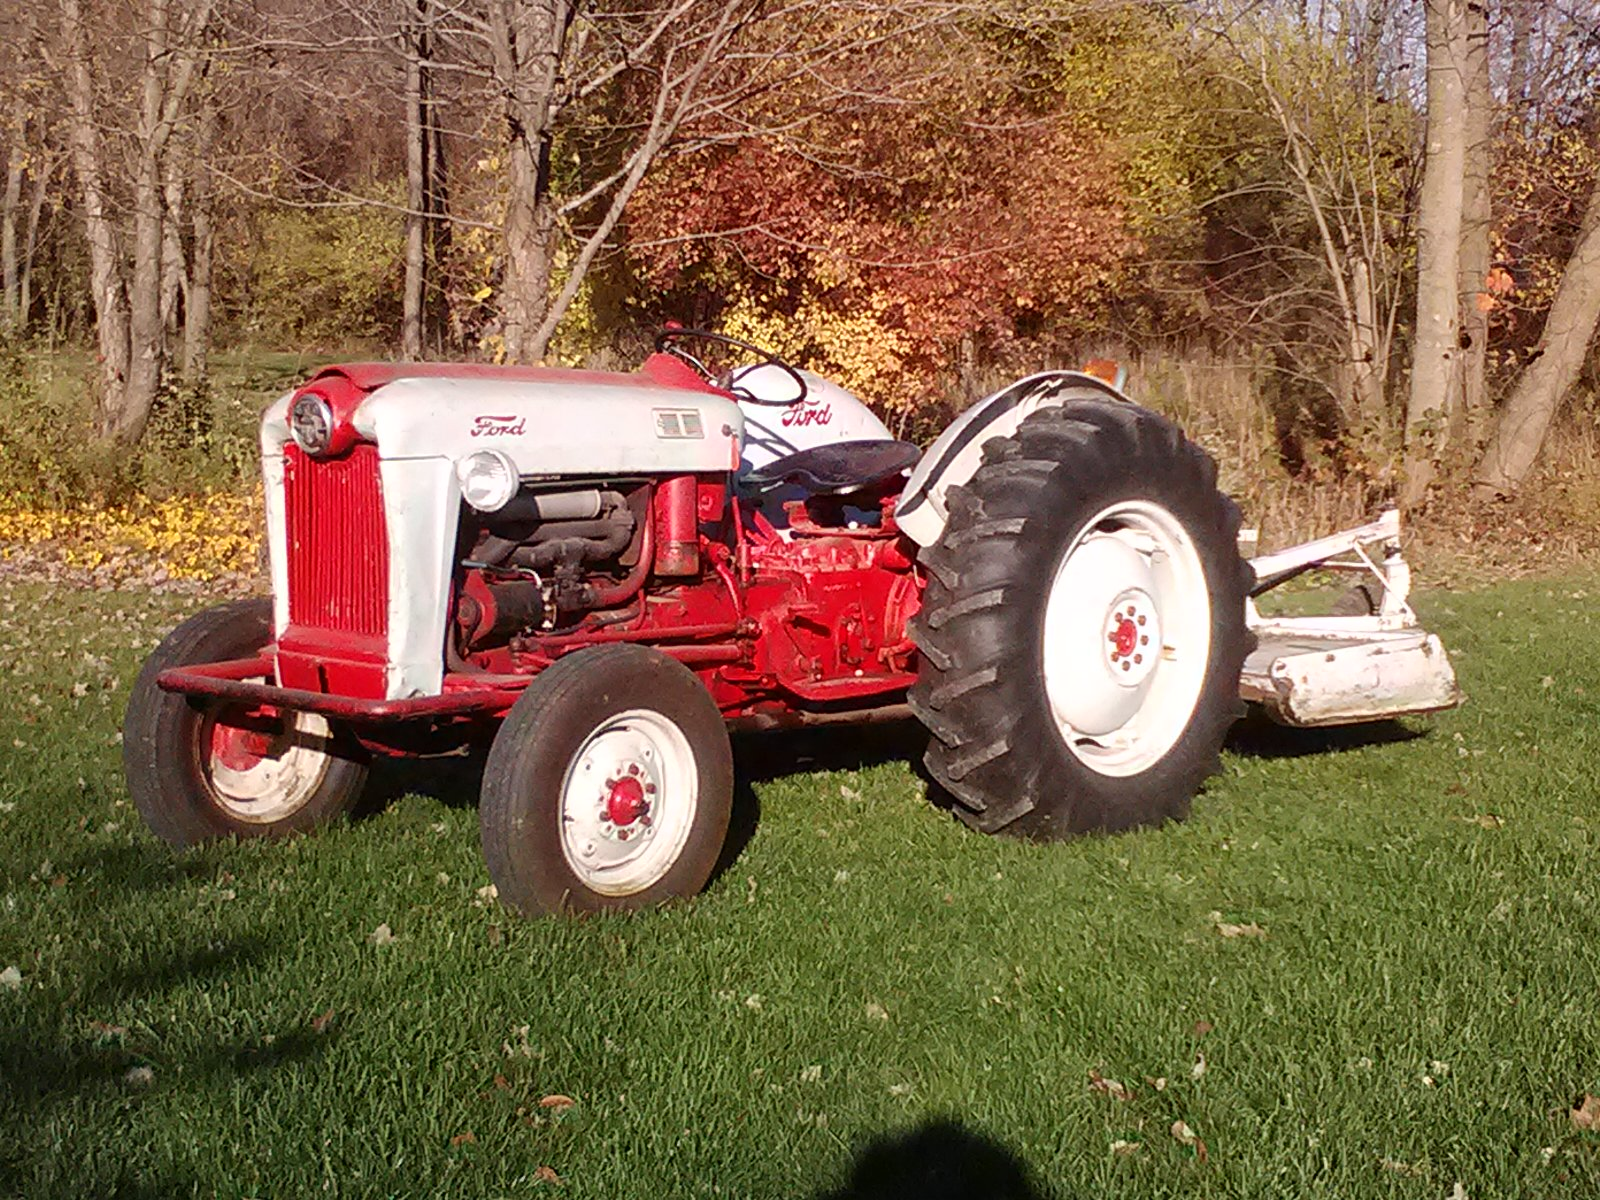 Ford Farm Tractors : Years later a dream is fulfilled old world garden